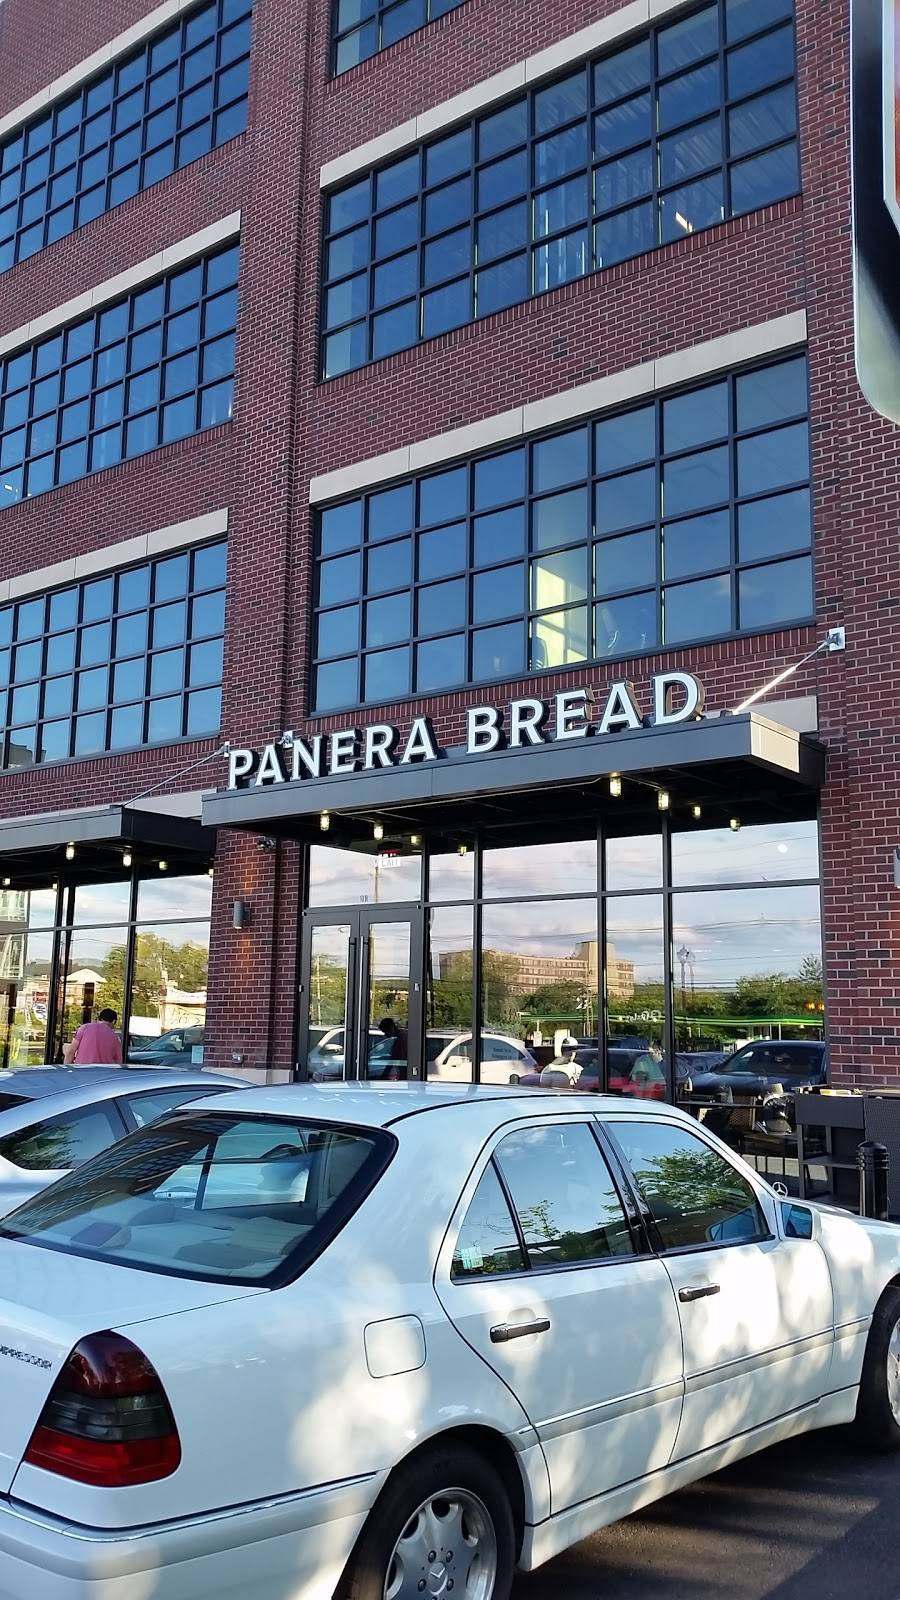 Panera Bread | cafe | 10 Sterling Blvd, Englewood, NJ 07631, USA | 2013089008 OR +1 201-308-9008